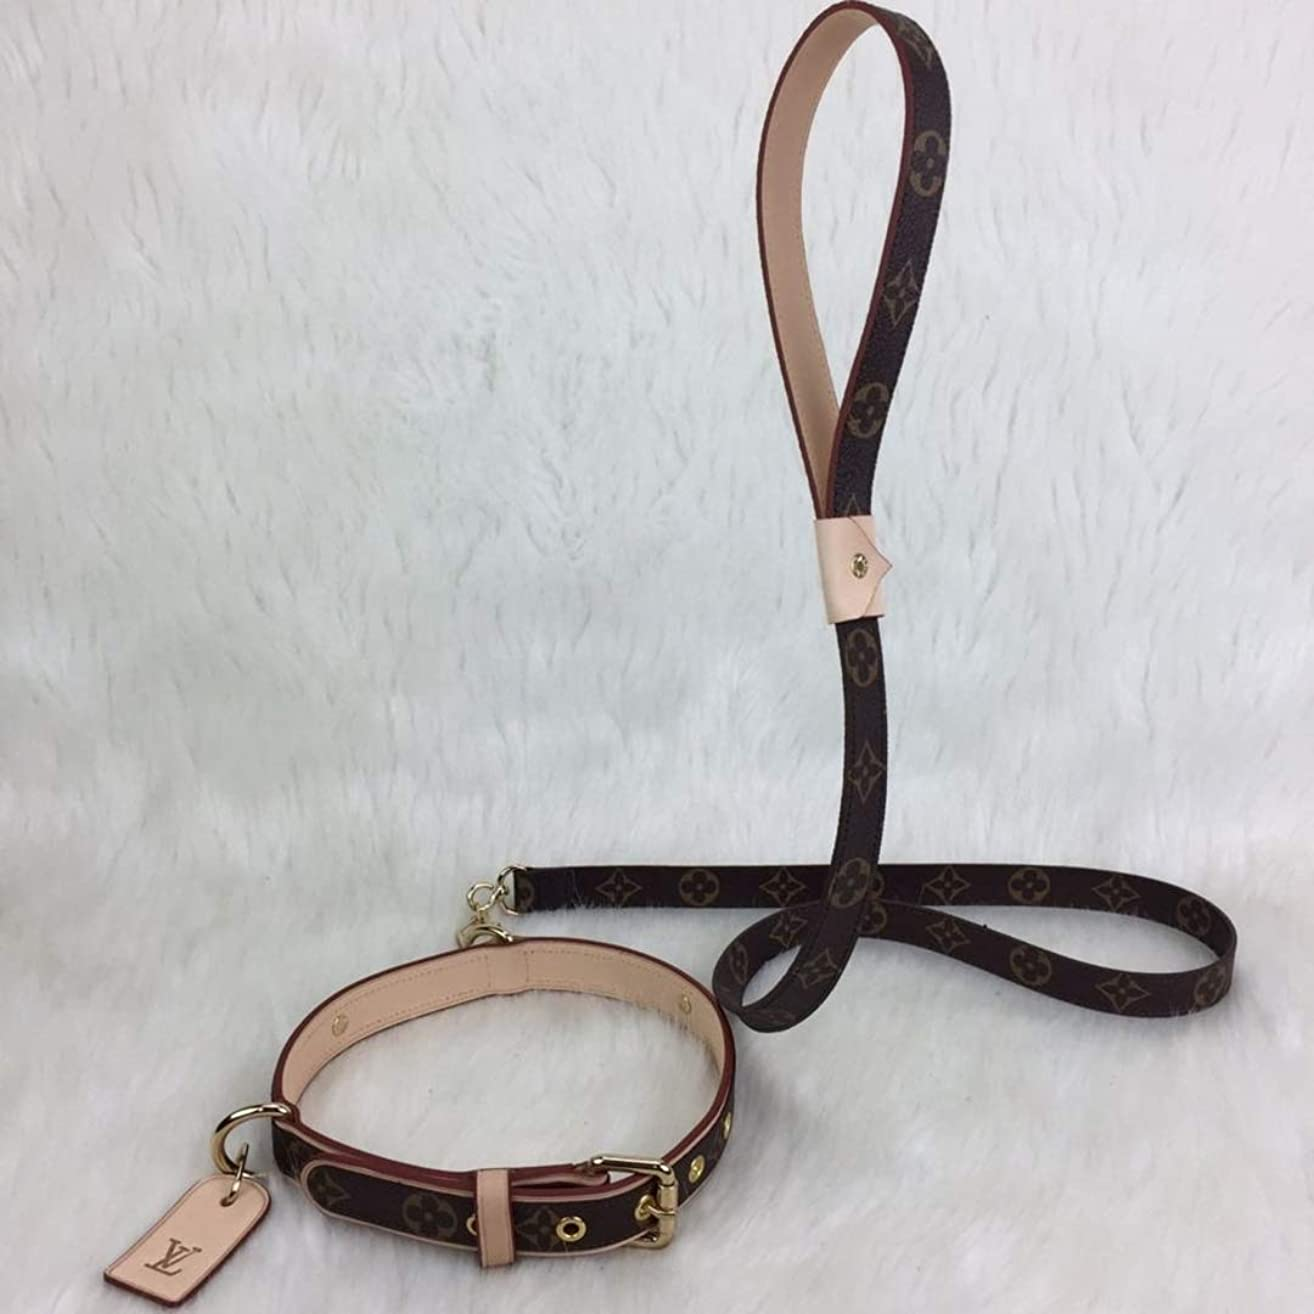 Original Brown Monogram L*uis V*itton Leather Dog Collar & Leash HandMade by - DesignerBomb.